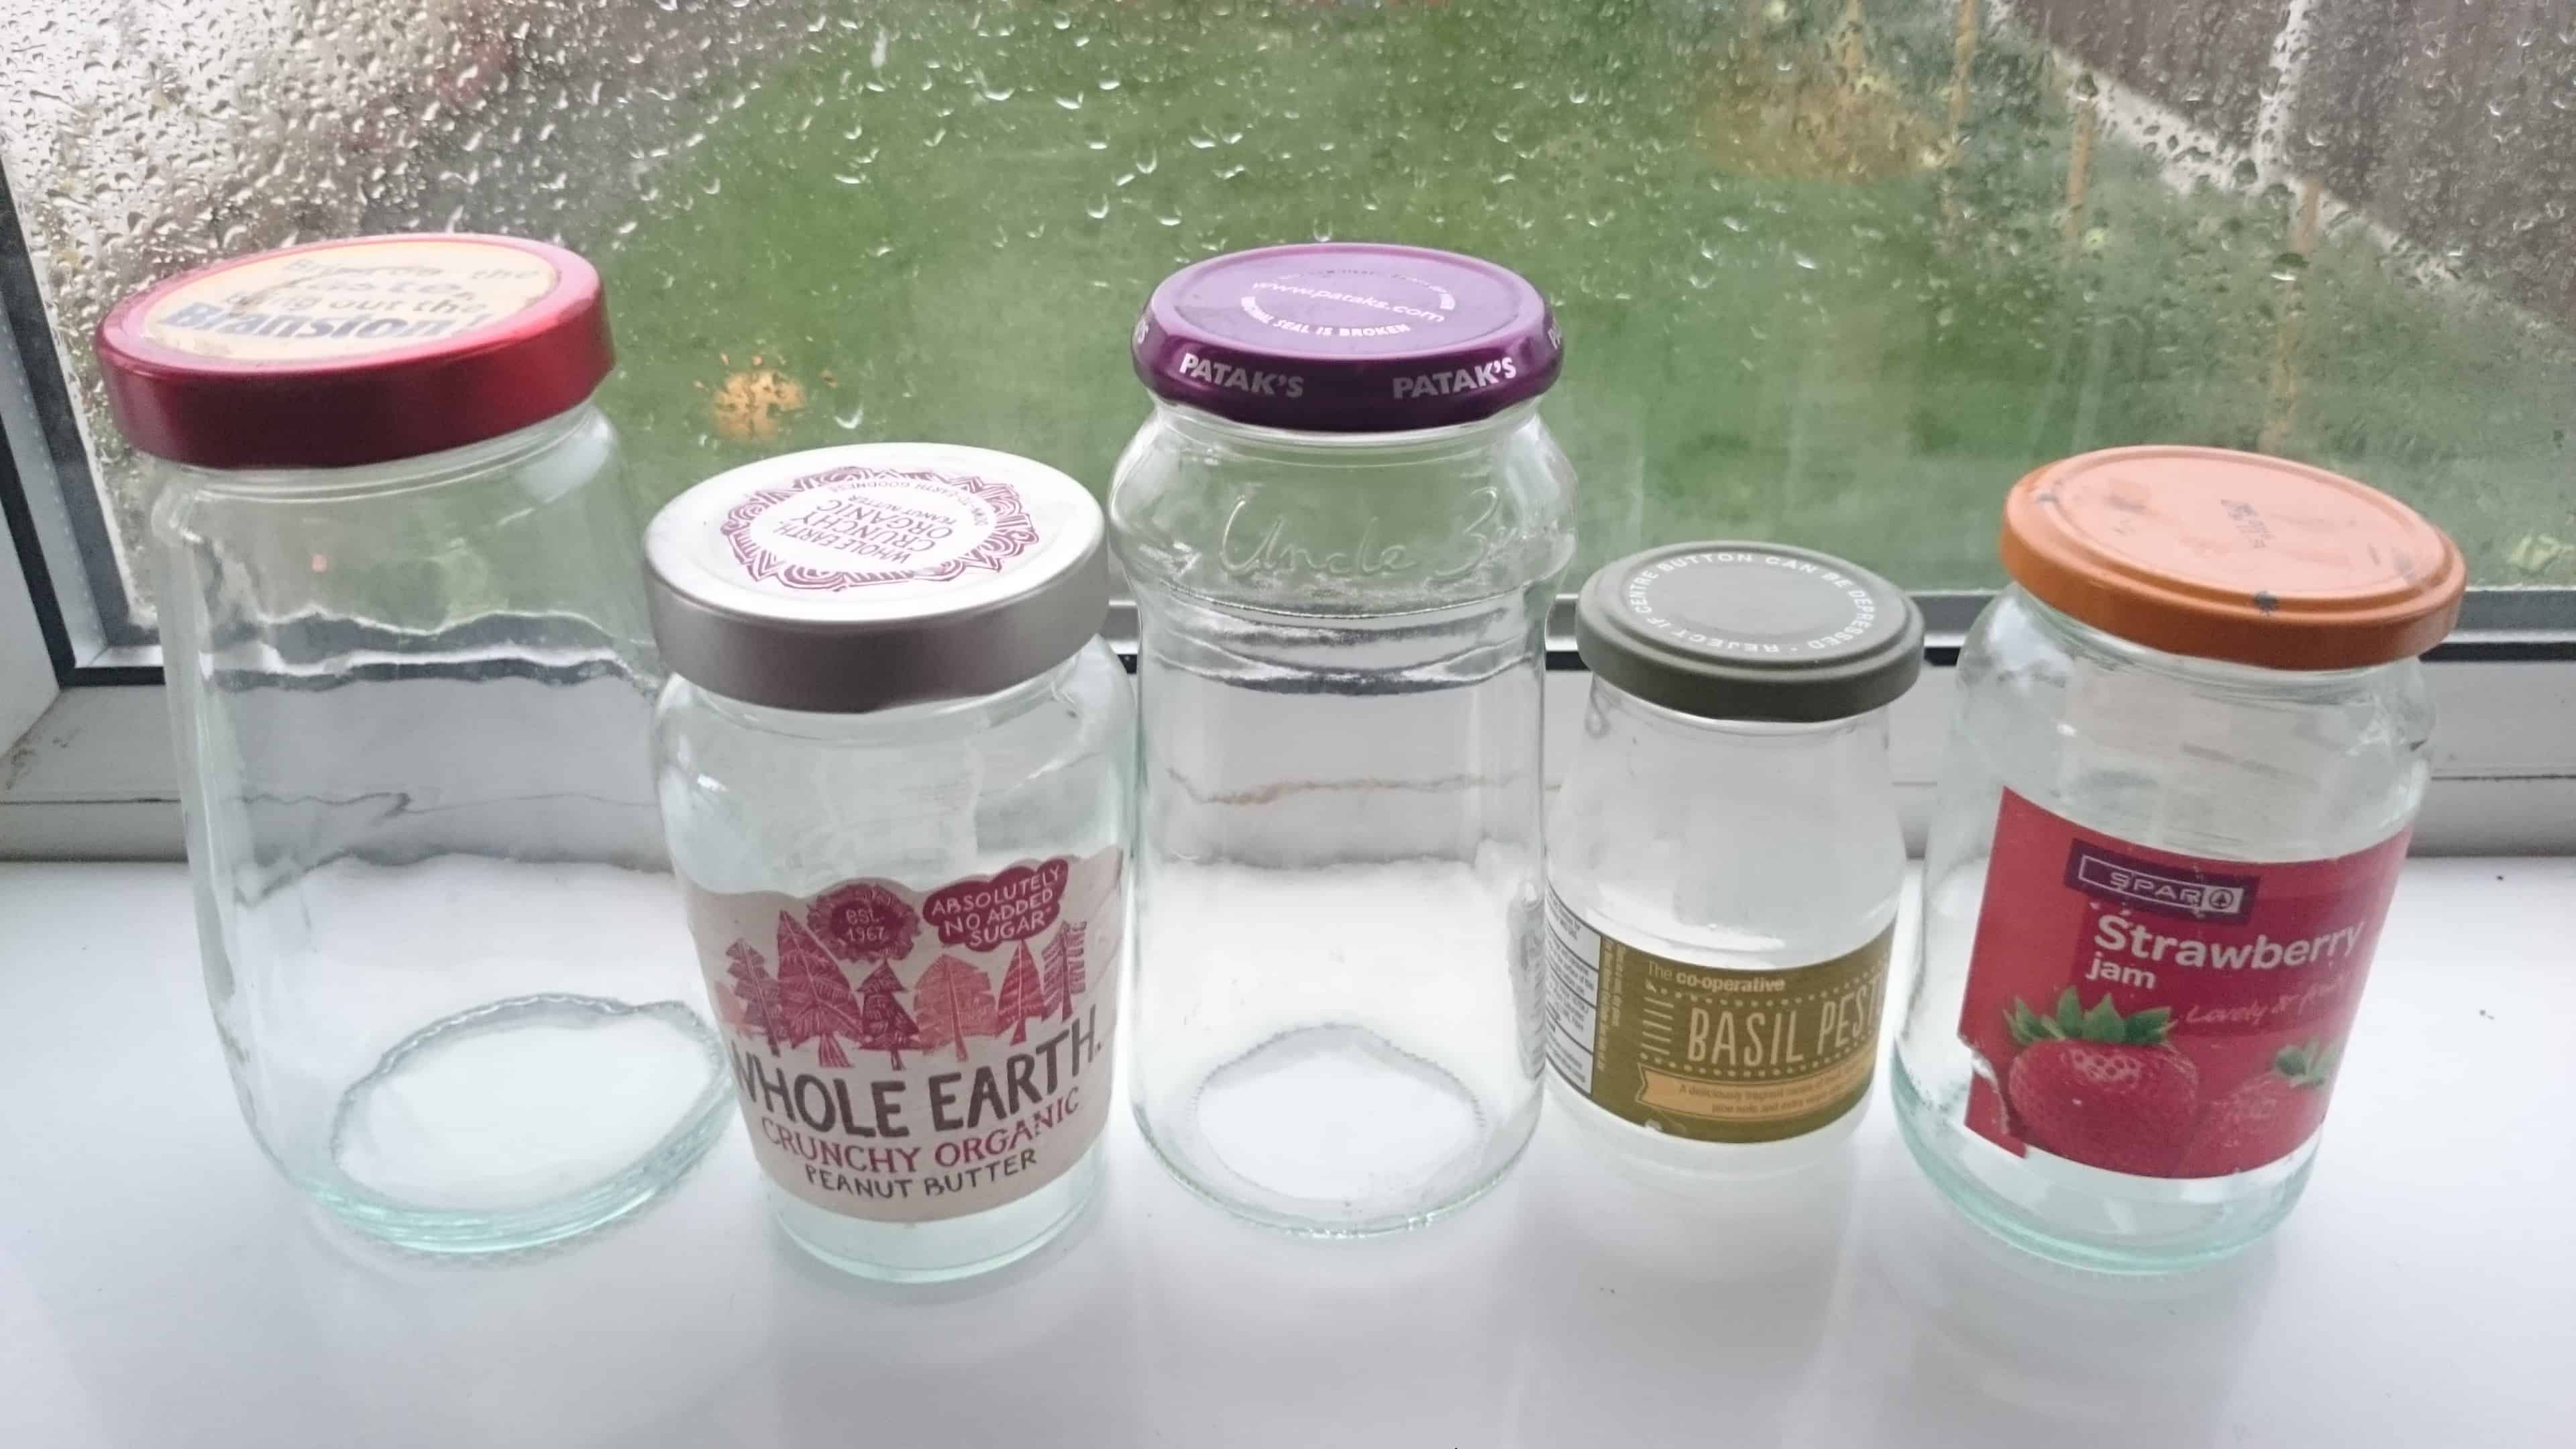 How to Sterilize Jars for Home Made Jams & Chutneys – A Christmas Countdown